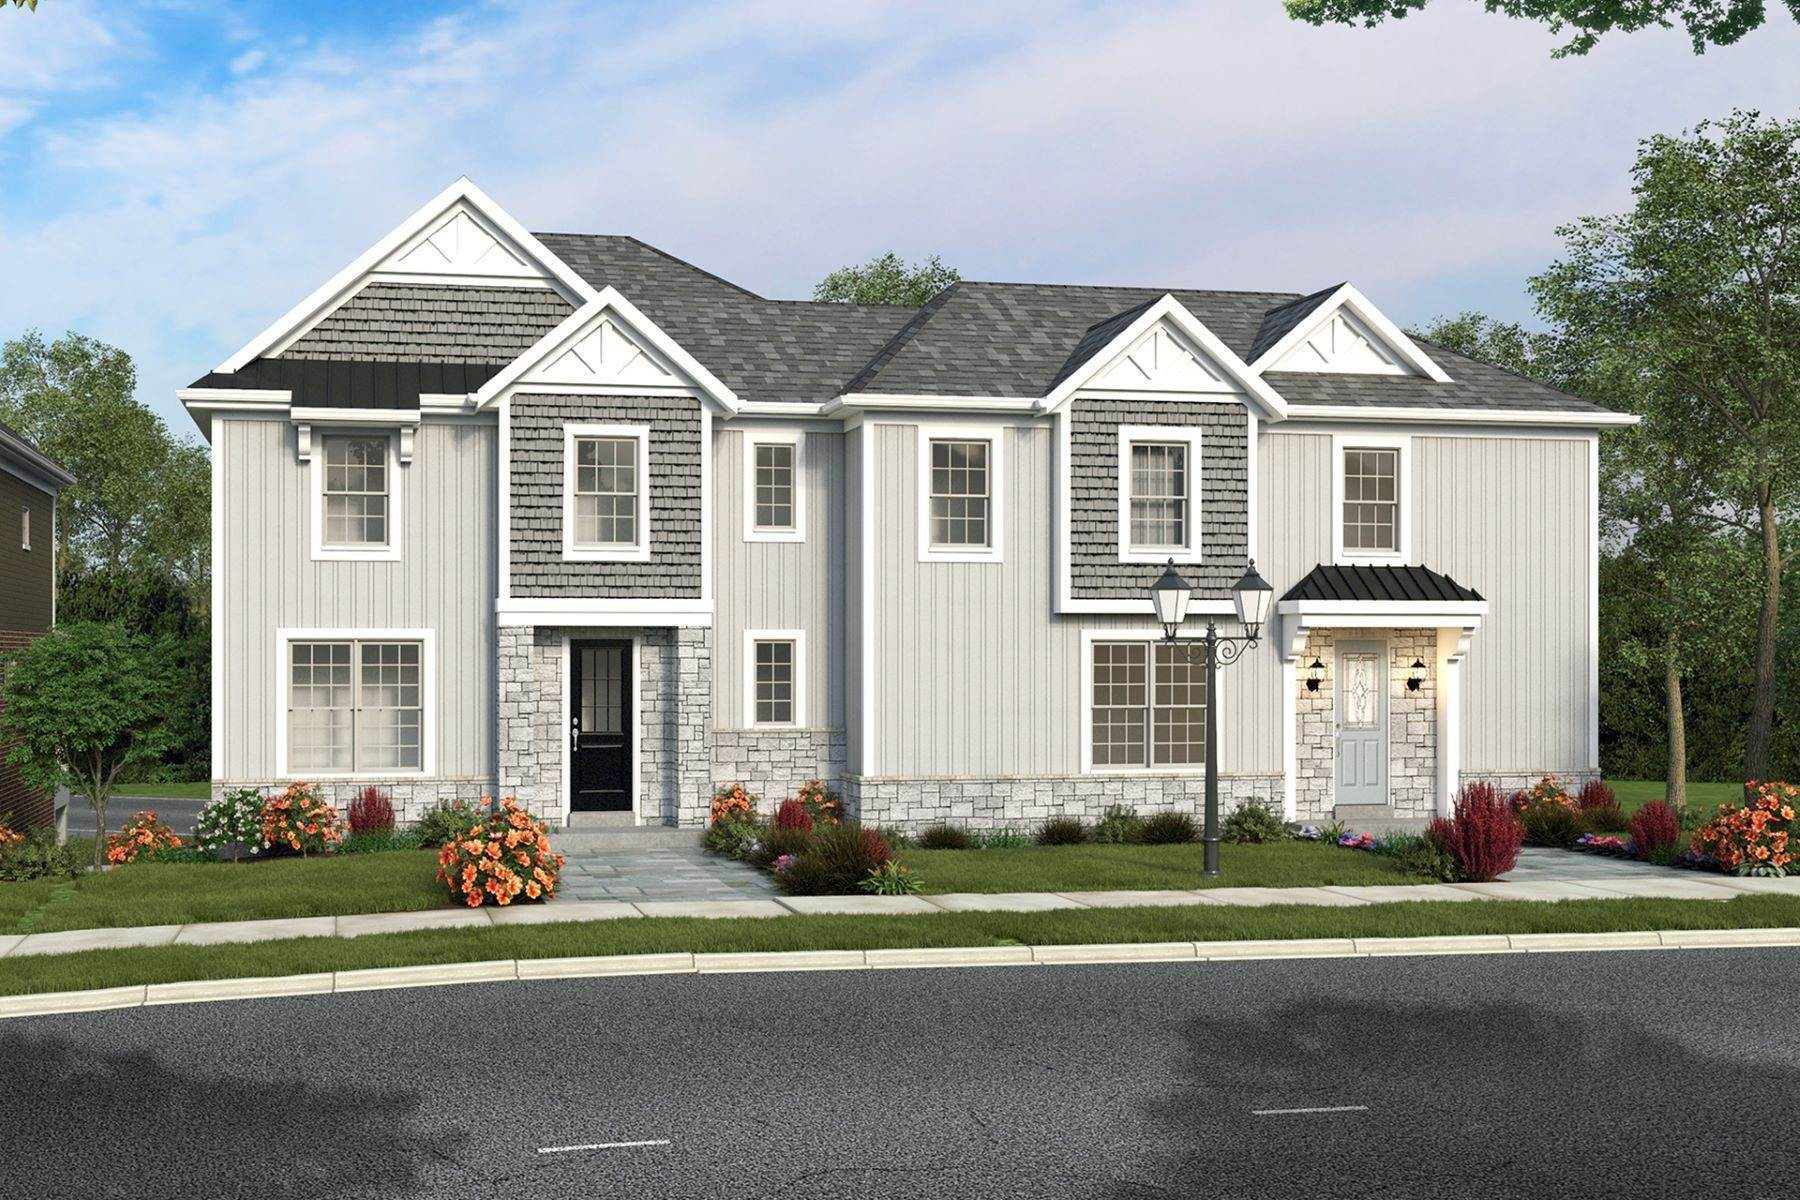 Condominiums for Sale at Creekside Pointe - Blue Ash Premier Lifestyle Community 9312 Old Plainfield Rd Blue Ash, Ohio 45236 United States